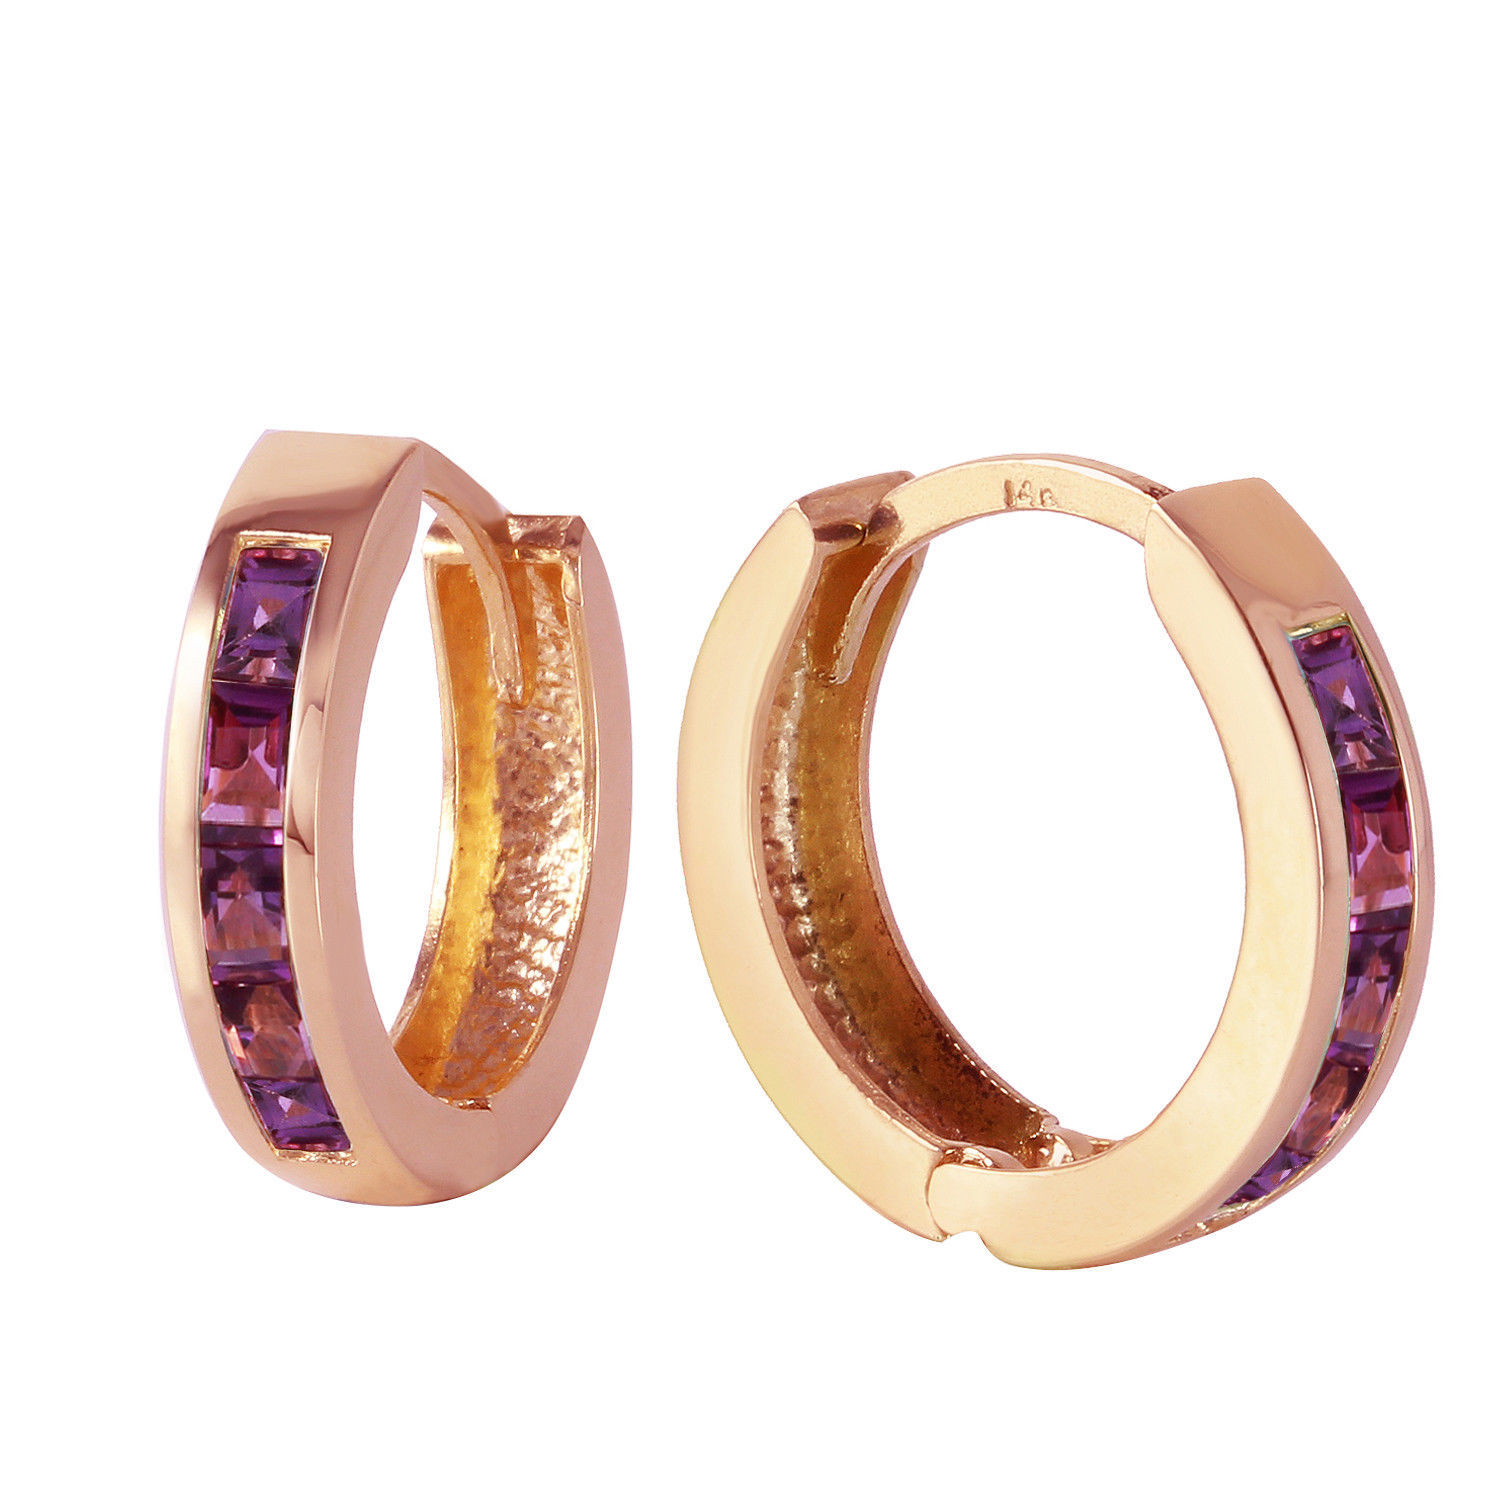 Primary image for 0.85 Carat 14K Solid Rose Gold Hoop Huggie Earrings Purple Amethyst